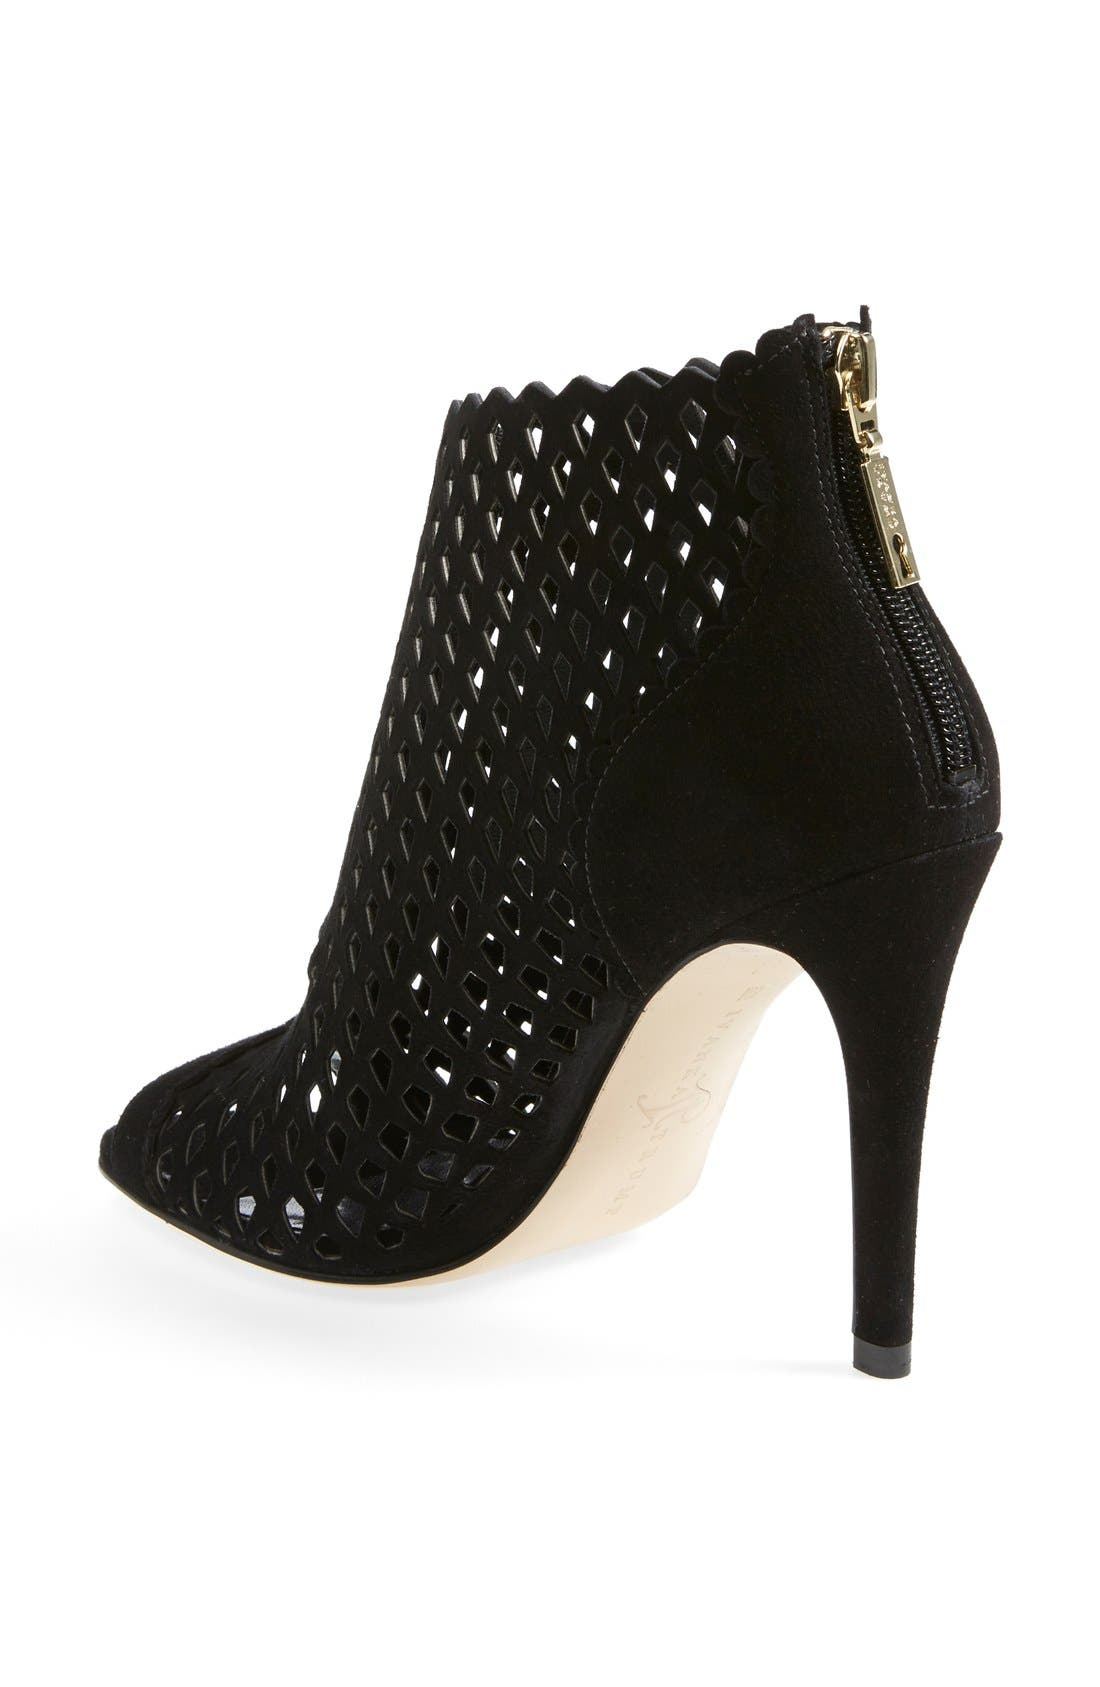 'Didia' Cutout Cage Open Toe Suede Bootie,                             Alternate thumbnail 5, color,                             001